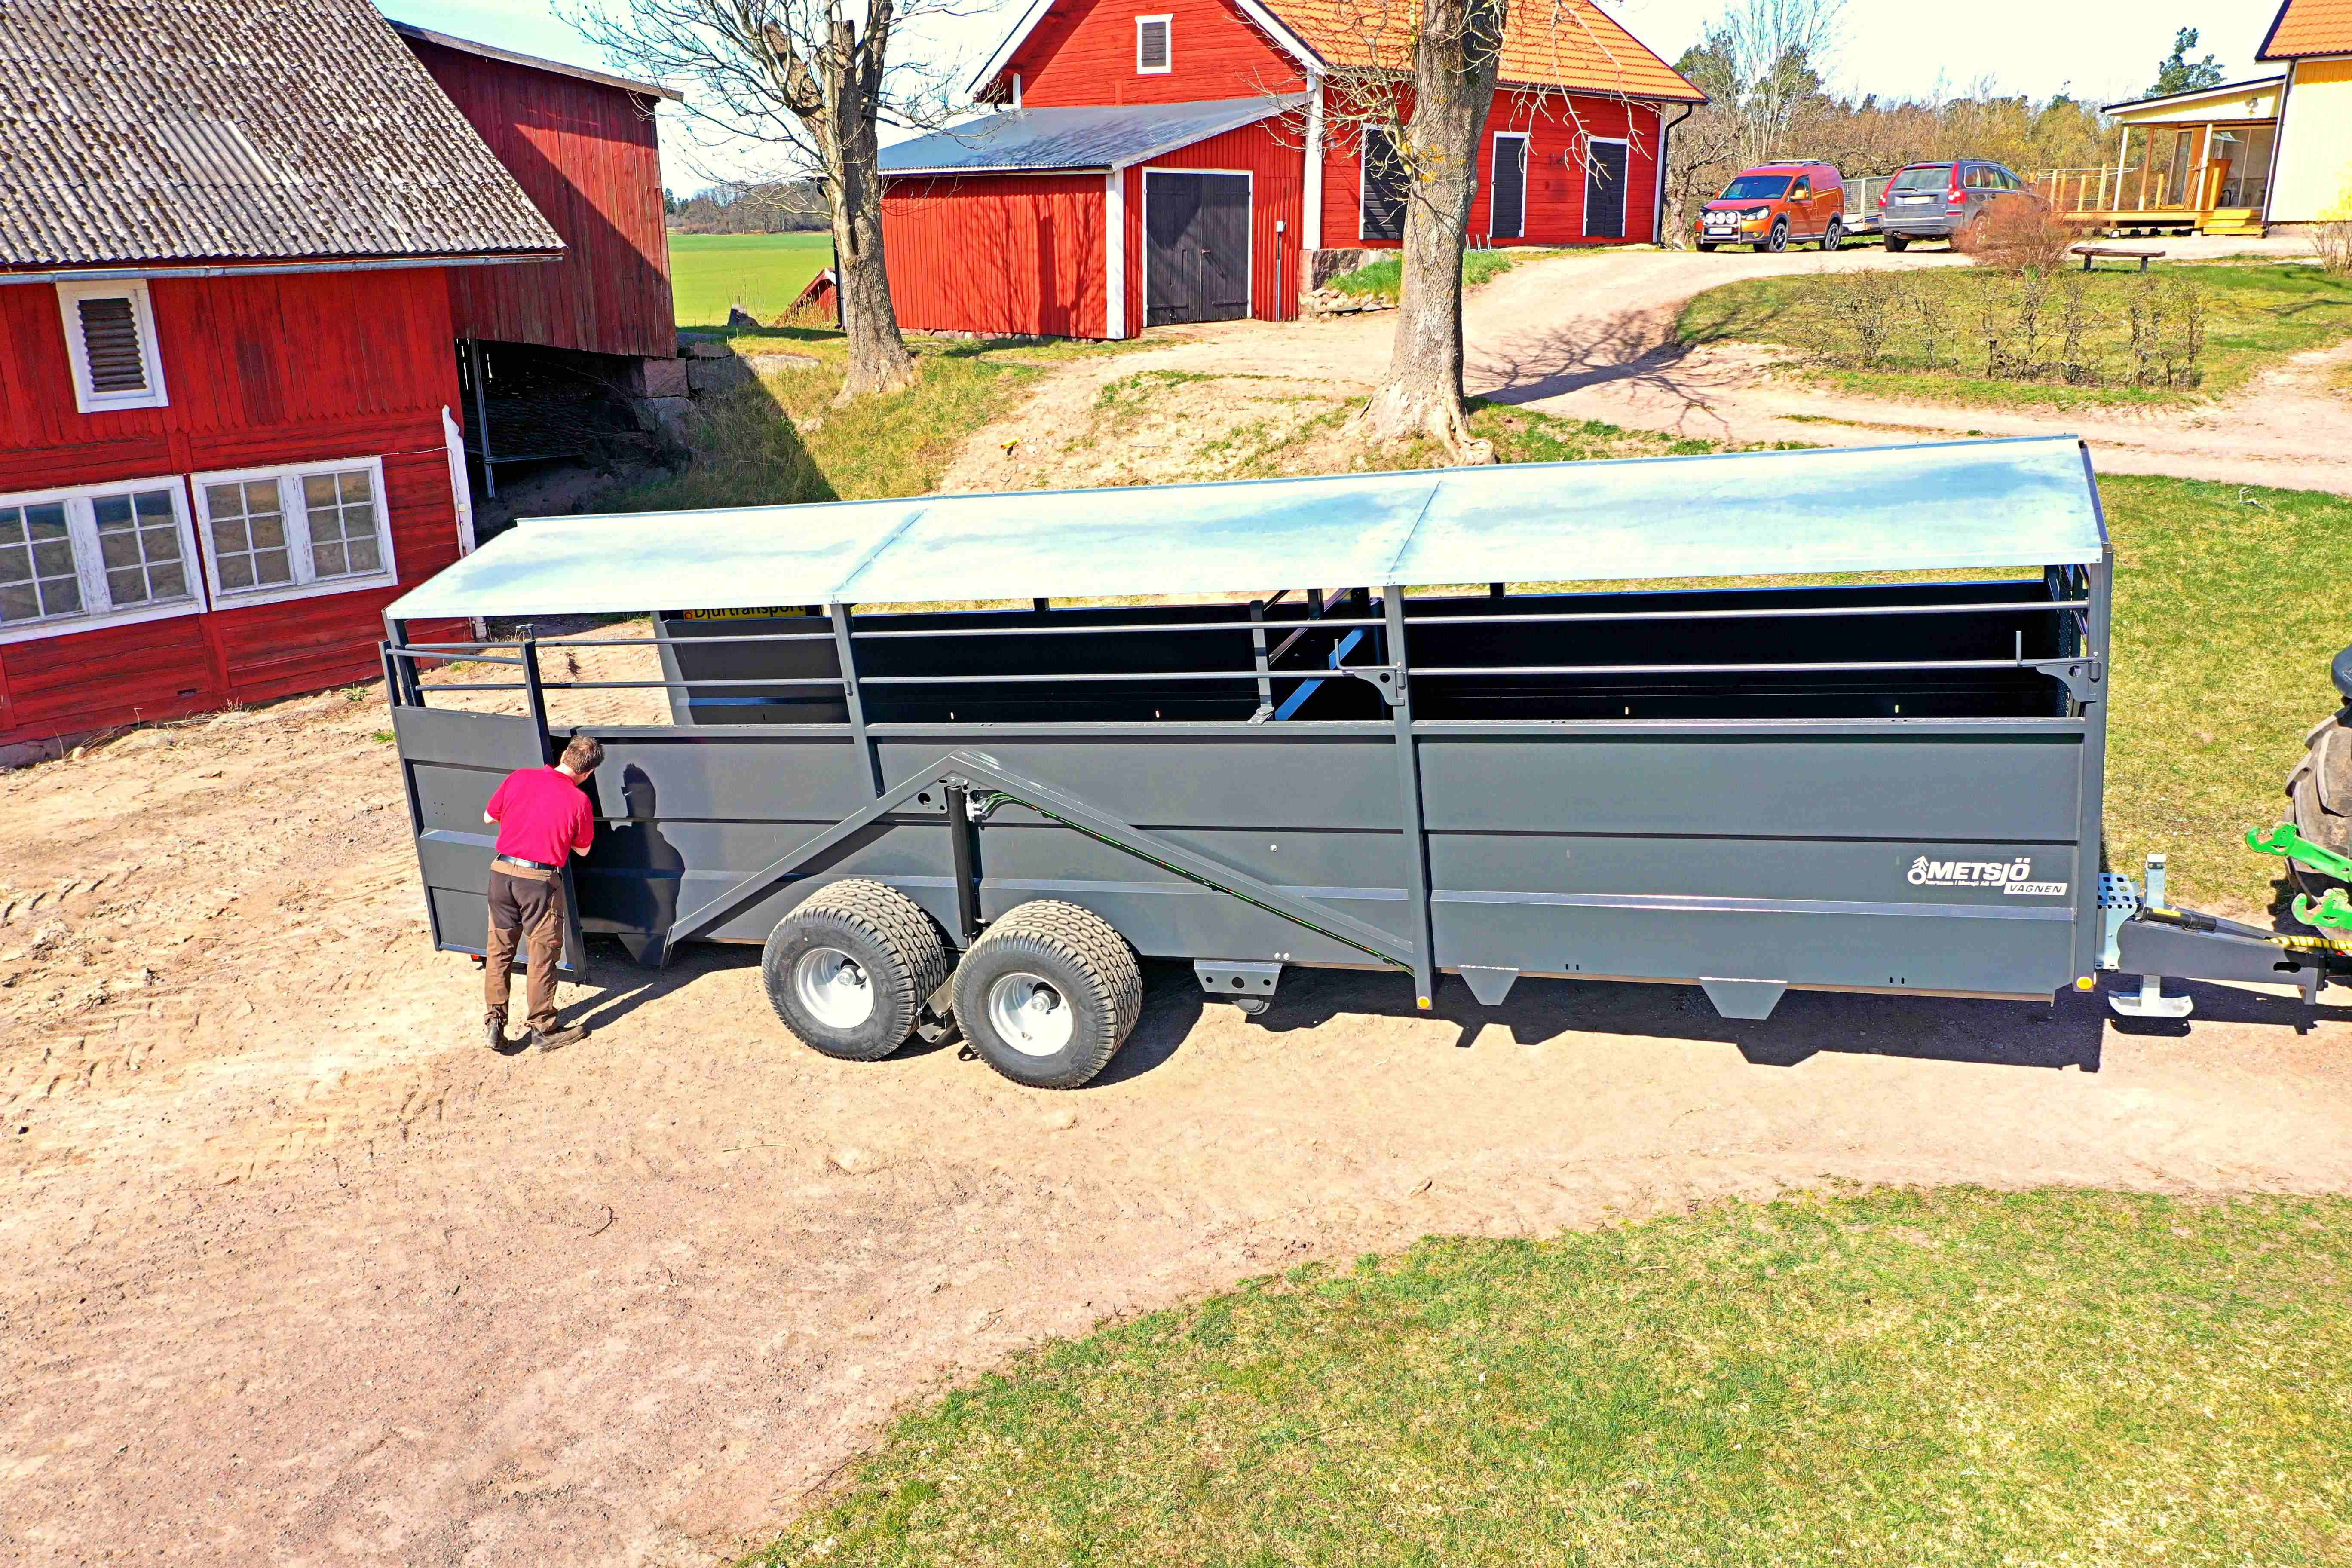 Metsjö domestic animal trailers without wheel housings, allowing loading to take place almost at ground level